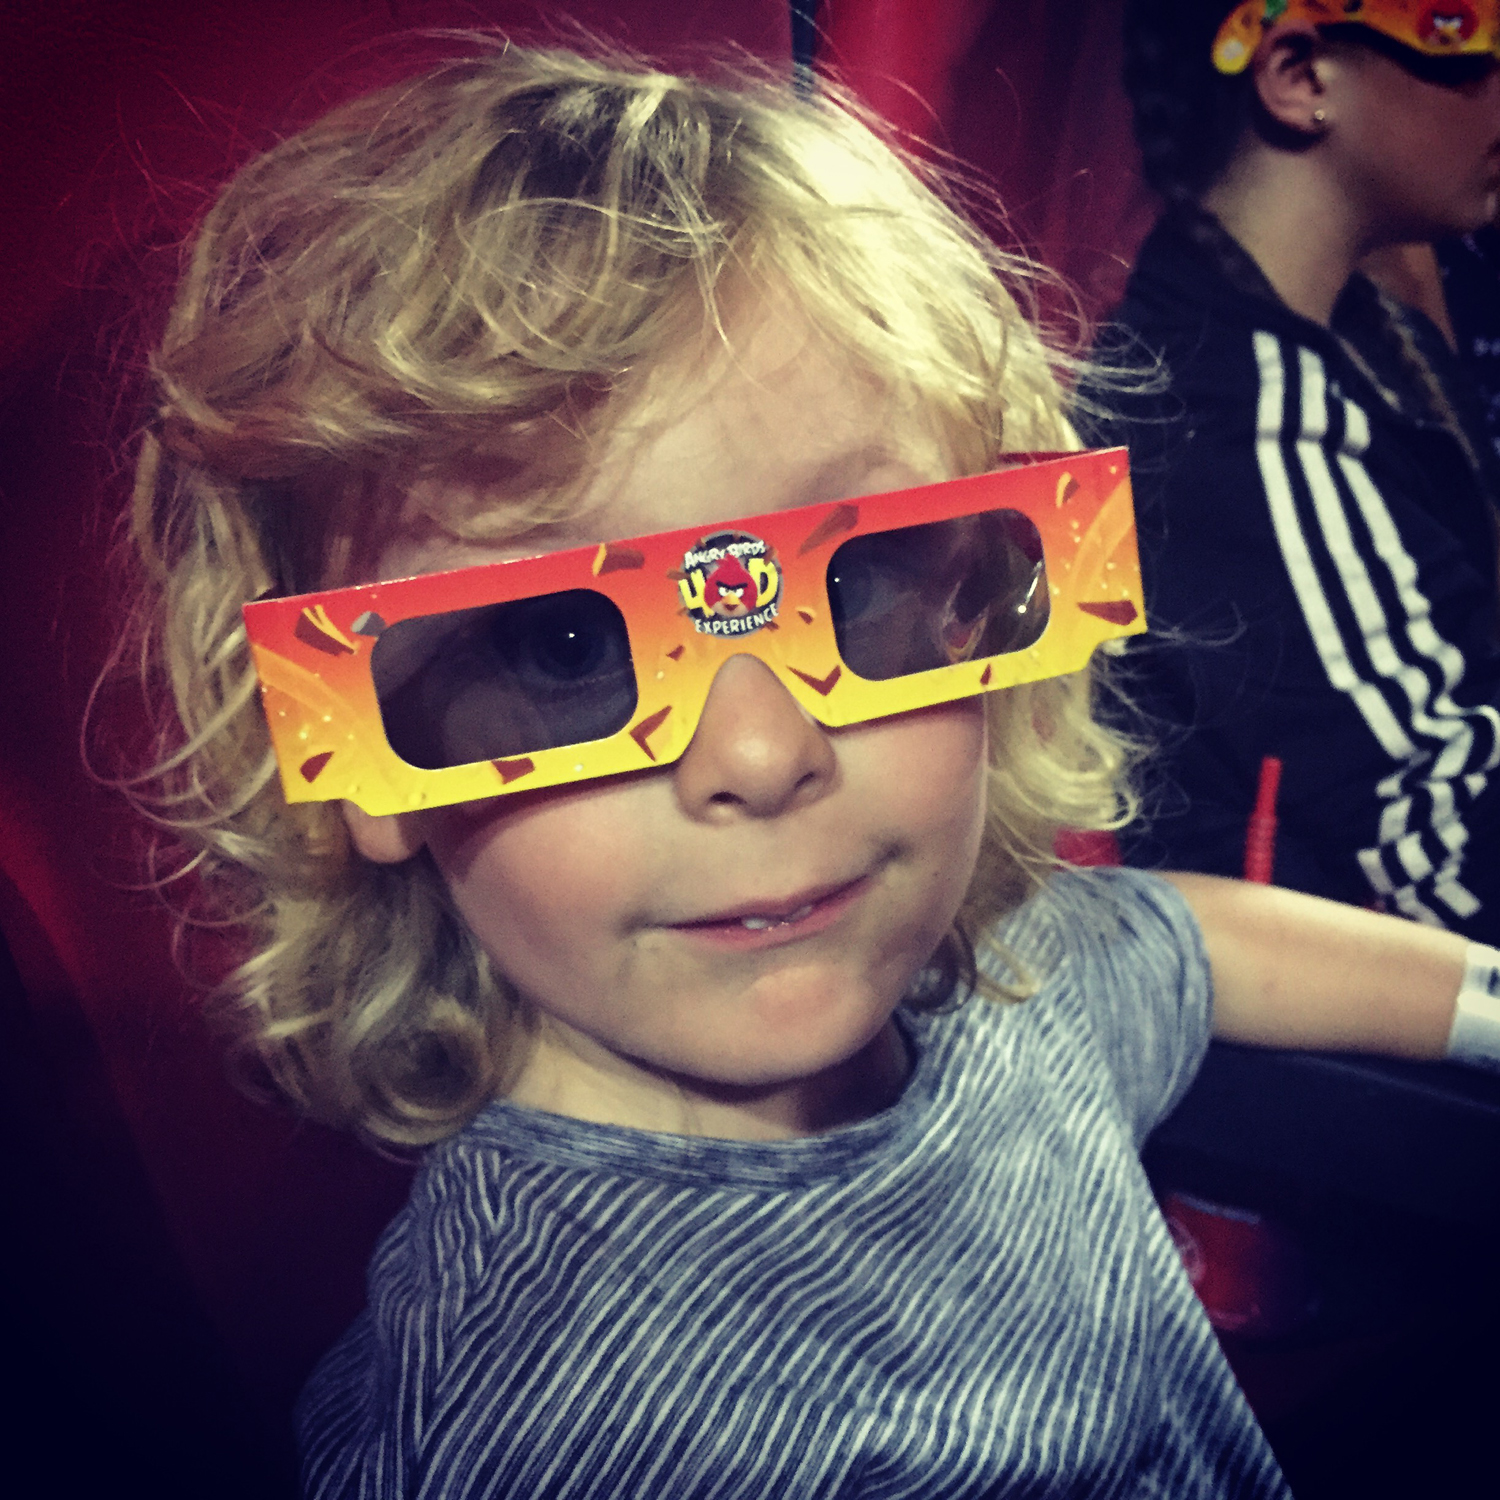 Jacob didn't like the Angry Birds 4D experience